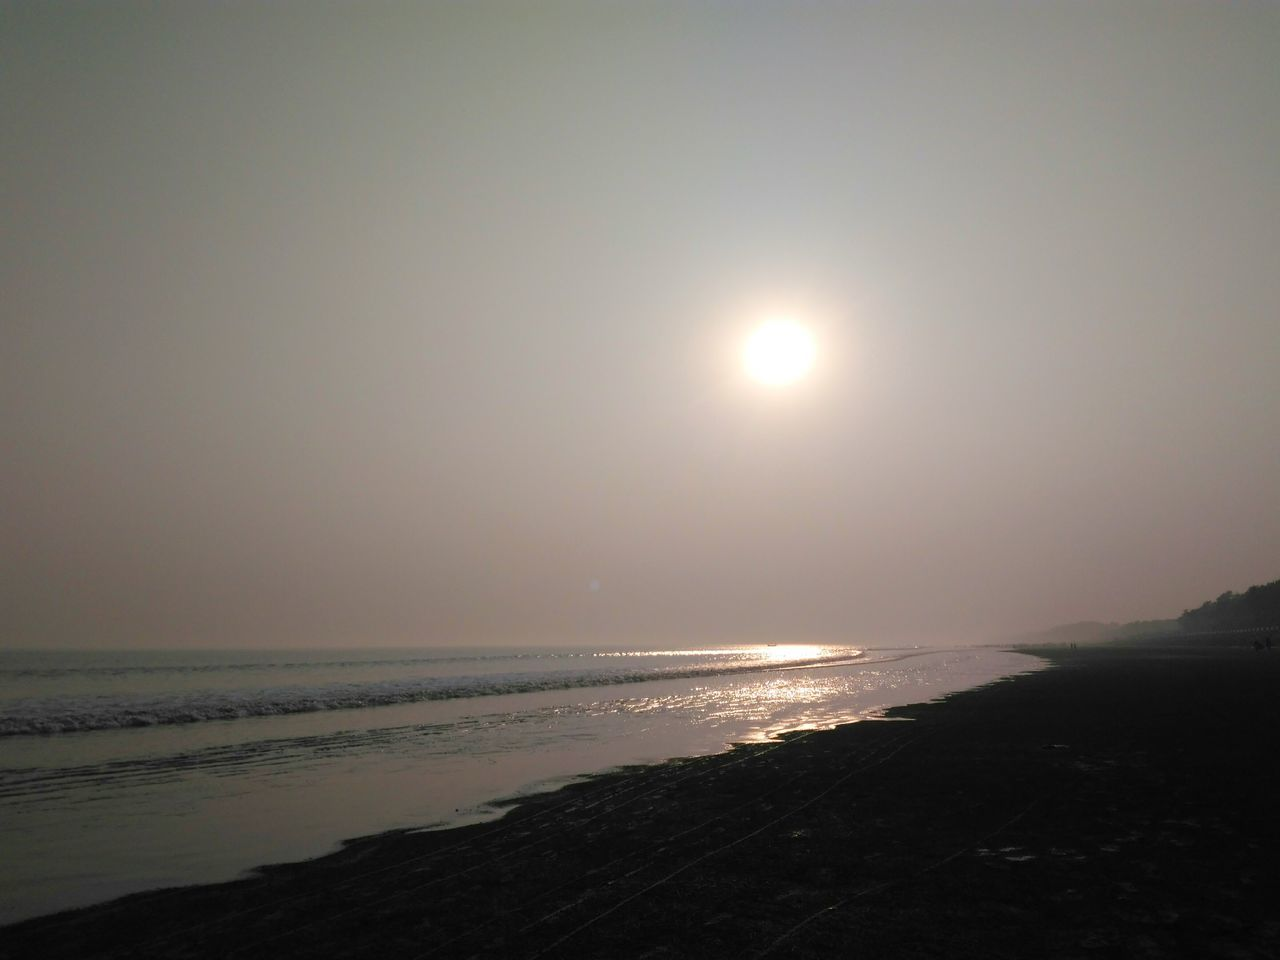 Sea Beach Night Sunset moonlight Horizon Over Water Scenics Nature Tranquility Moon Sand Outdoors No People Water Beauty In Nature Silver  Silver Thread Astronomy